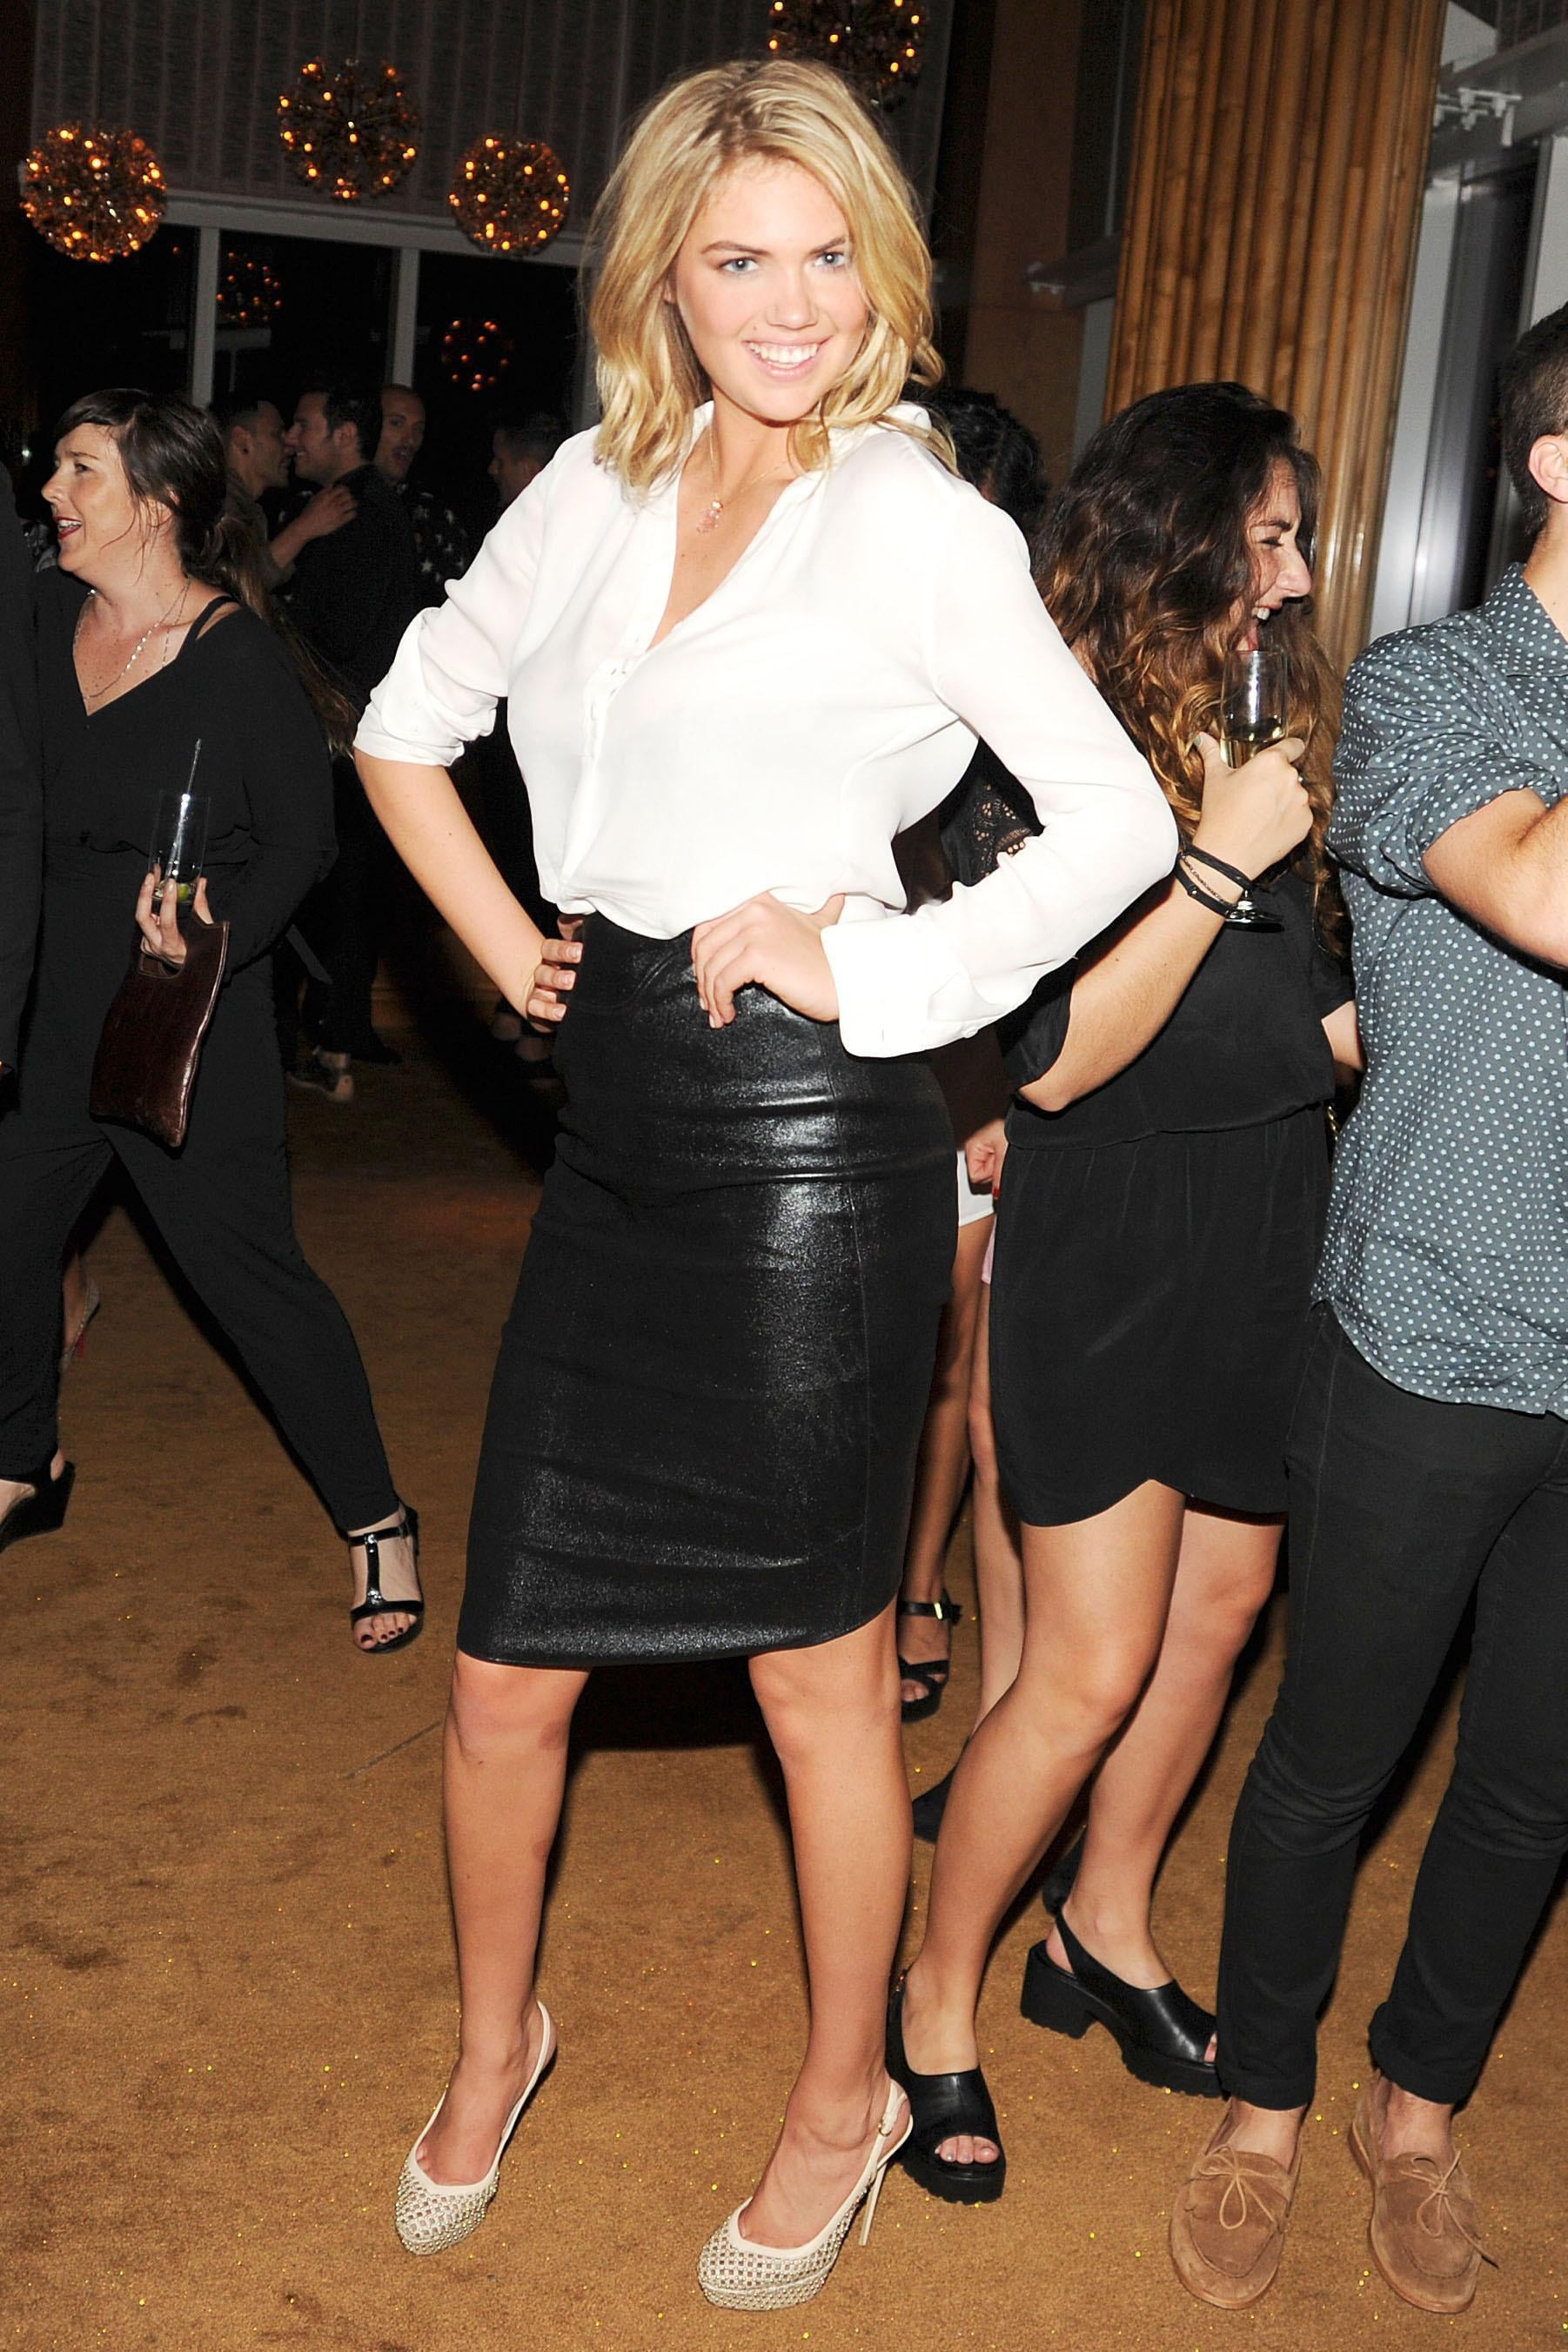 Kate Upton at the 2013 Swarovski-hosted CFDA Awards afterparty at The Top of the Standard, NYC. Source: Billy Farrell/BFAnyc.com